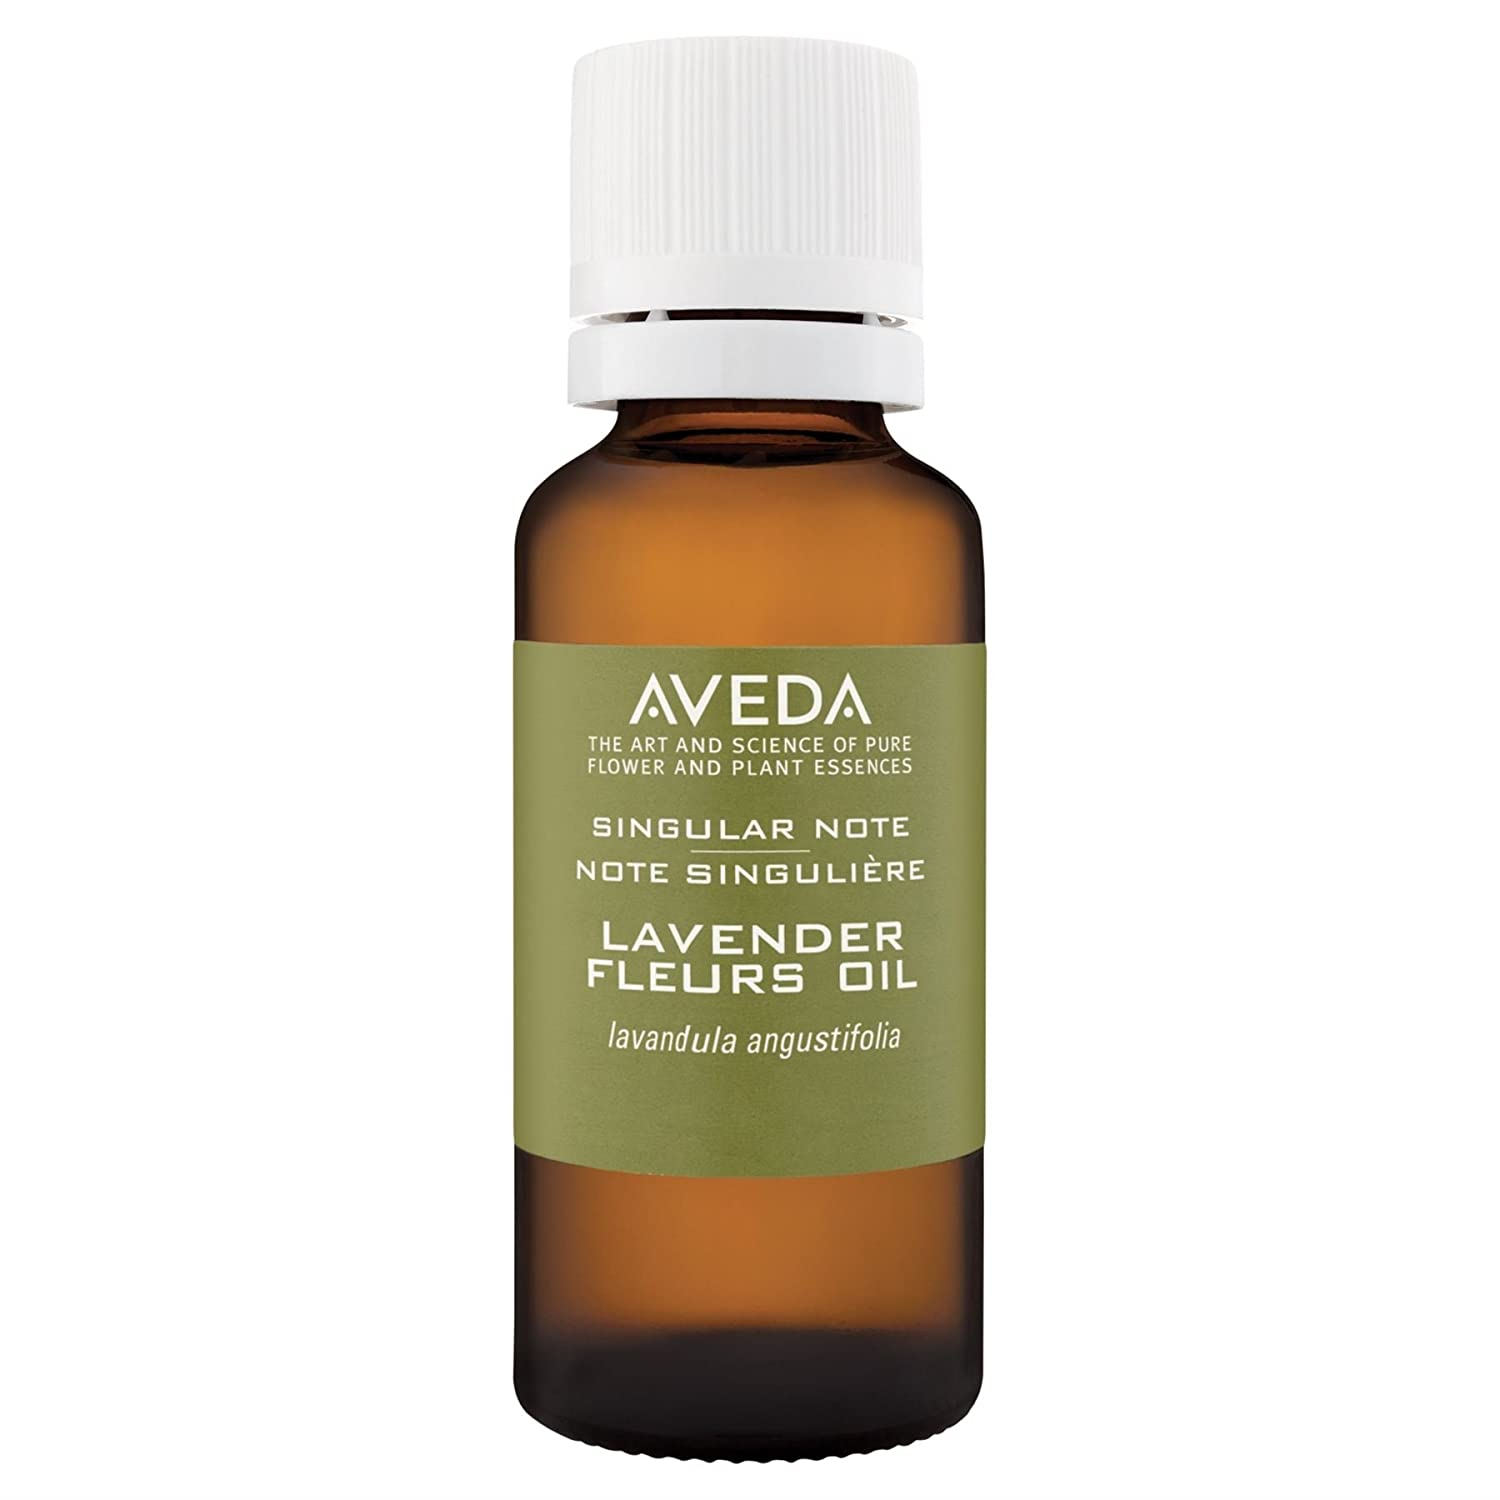 AVEDA Singular Notes Lavender Fleurs Oil 30ml